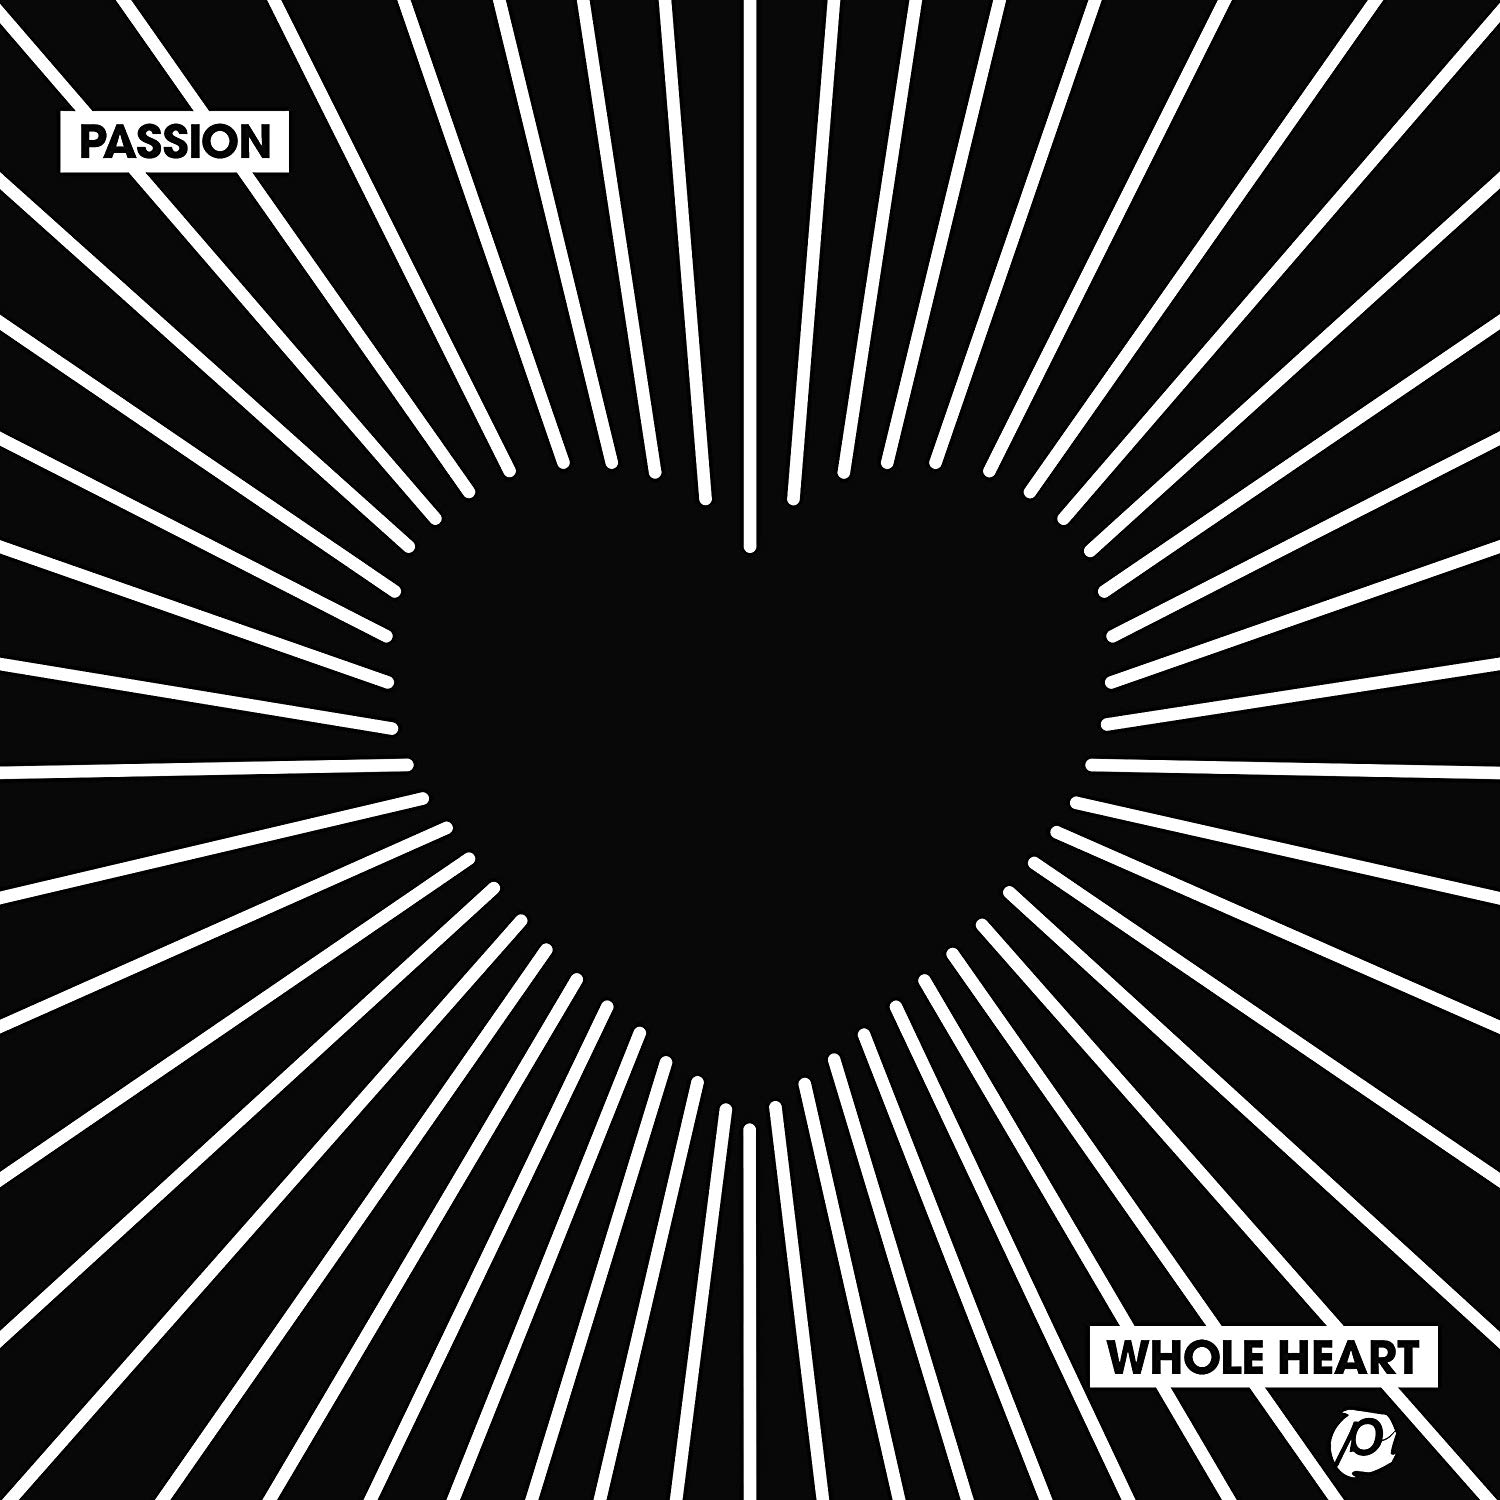 Passion - Whole Heart (2018) (Vinyl, LP)